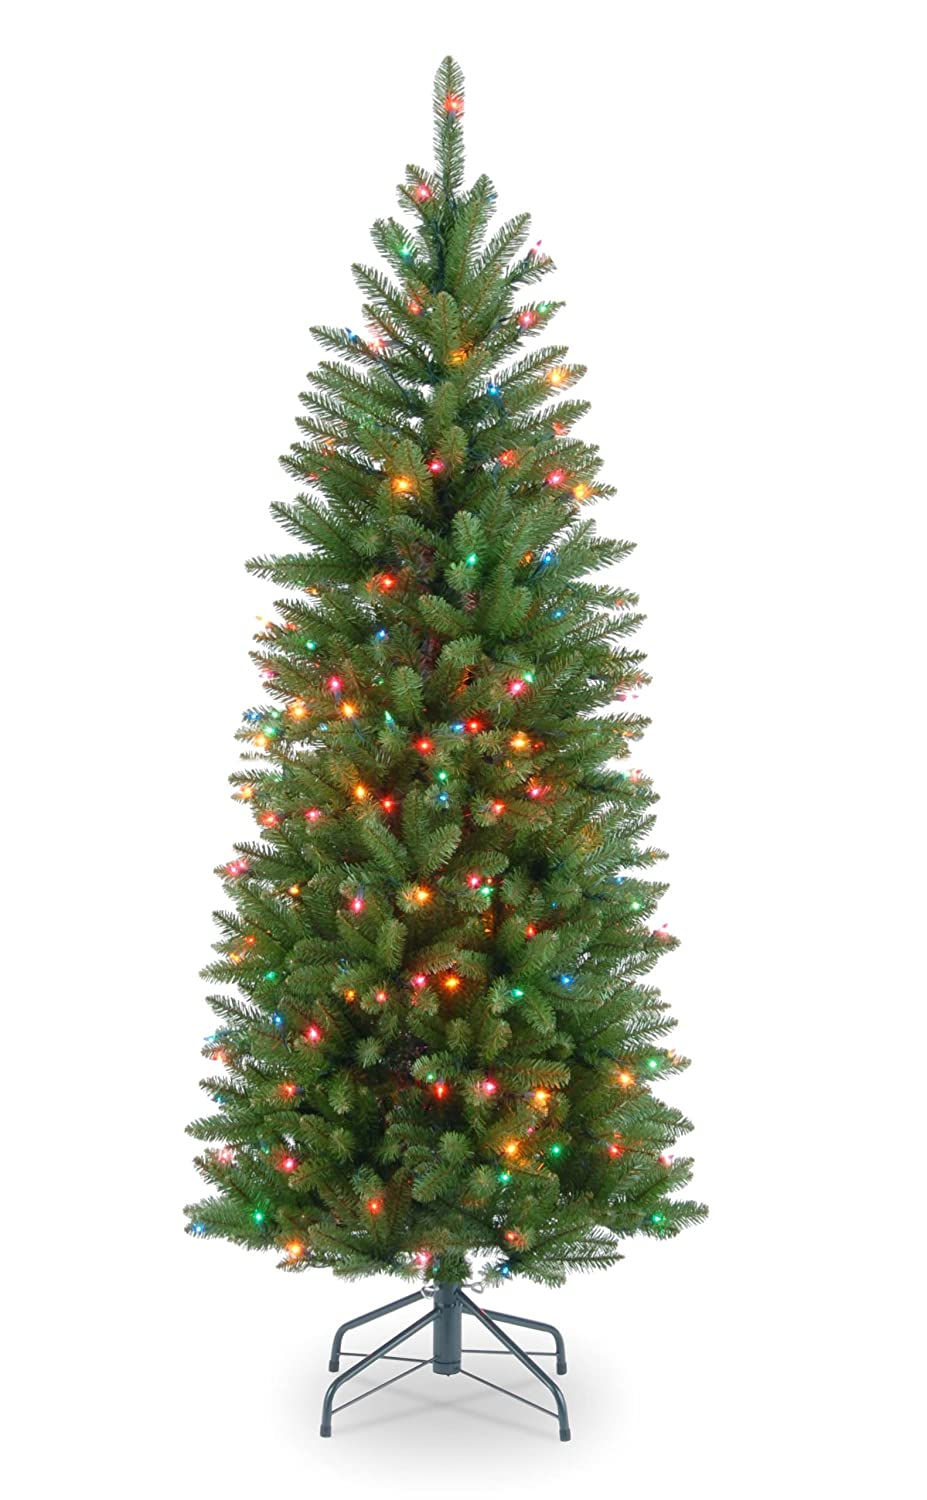 Amazon.com: National Tree 4.5 Foot Kingswood Fir Pencil Tree with ...